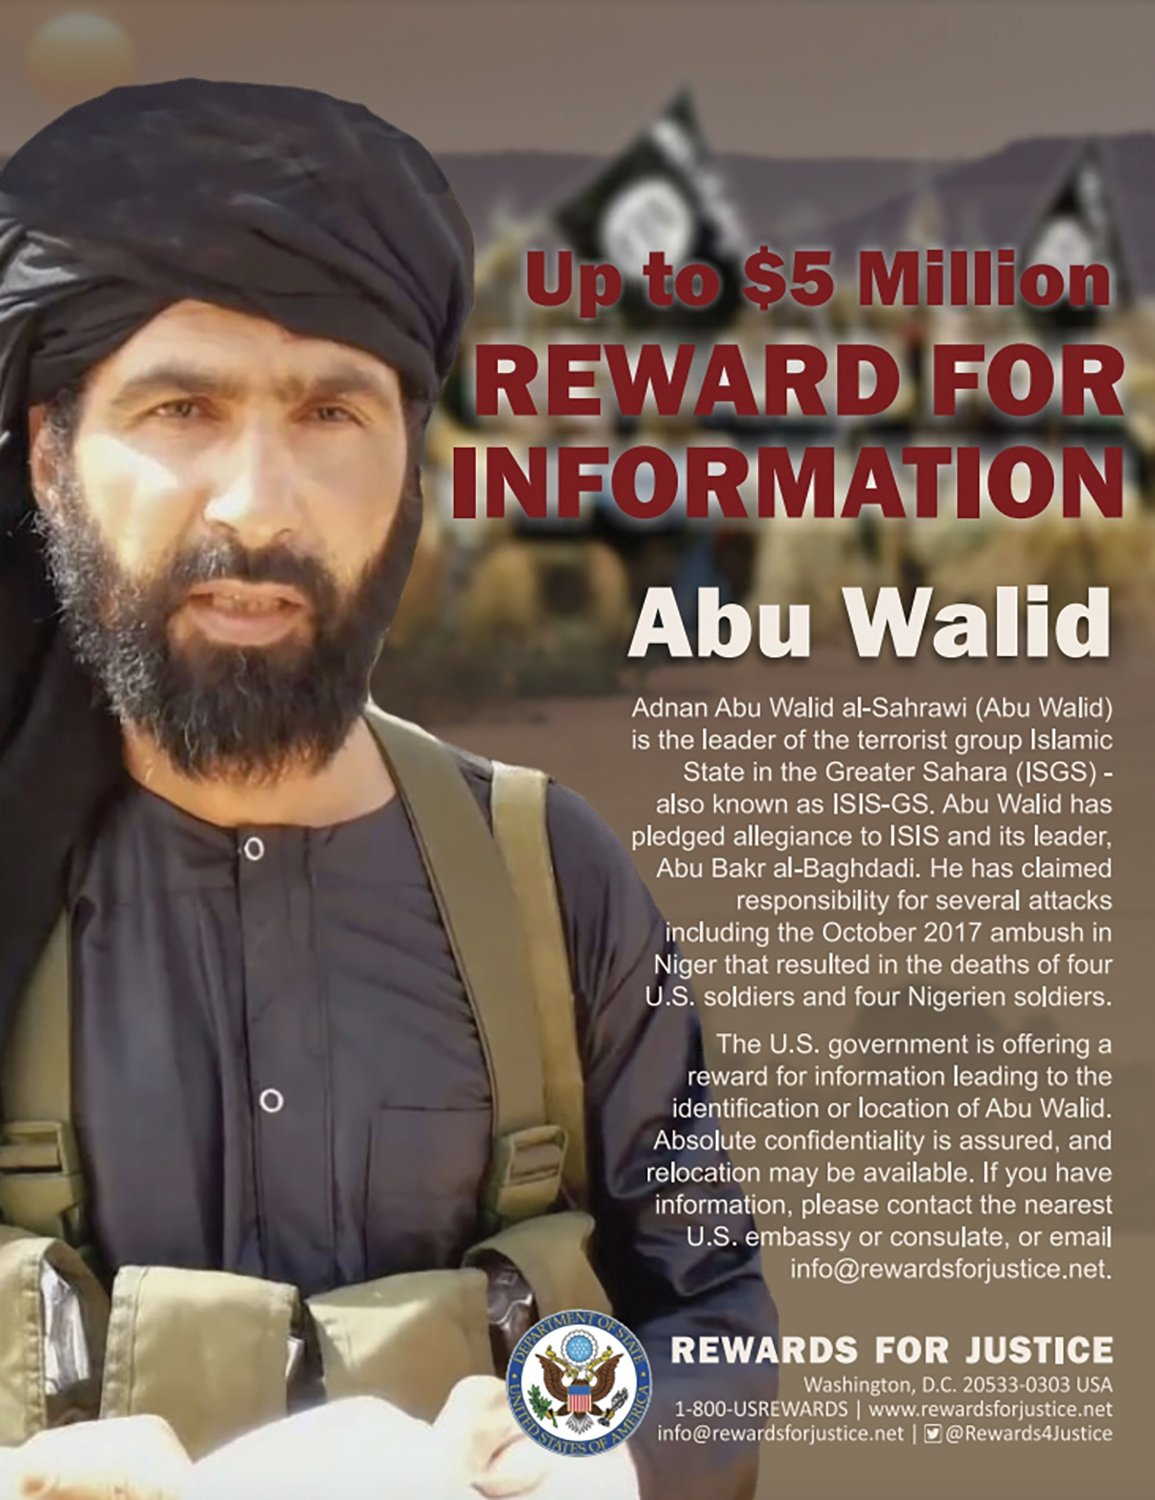 """This undated image provided by Rewards For Justice shows a wanted poster of Adnan Abu Walid al-Sahrawi, the leader of Daesh in the Greater Sahara. French President Emmanuel Macron announced the death of al-Sahrawi, Sept. 15, 2021, calling the killing """"a major success."""" (AP Photo)"""